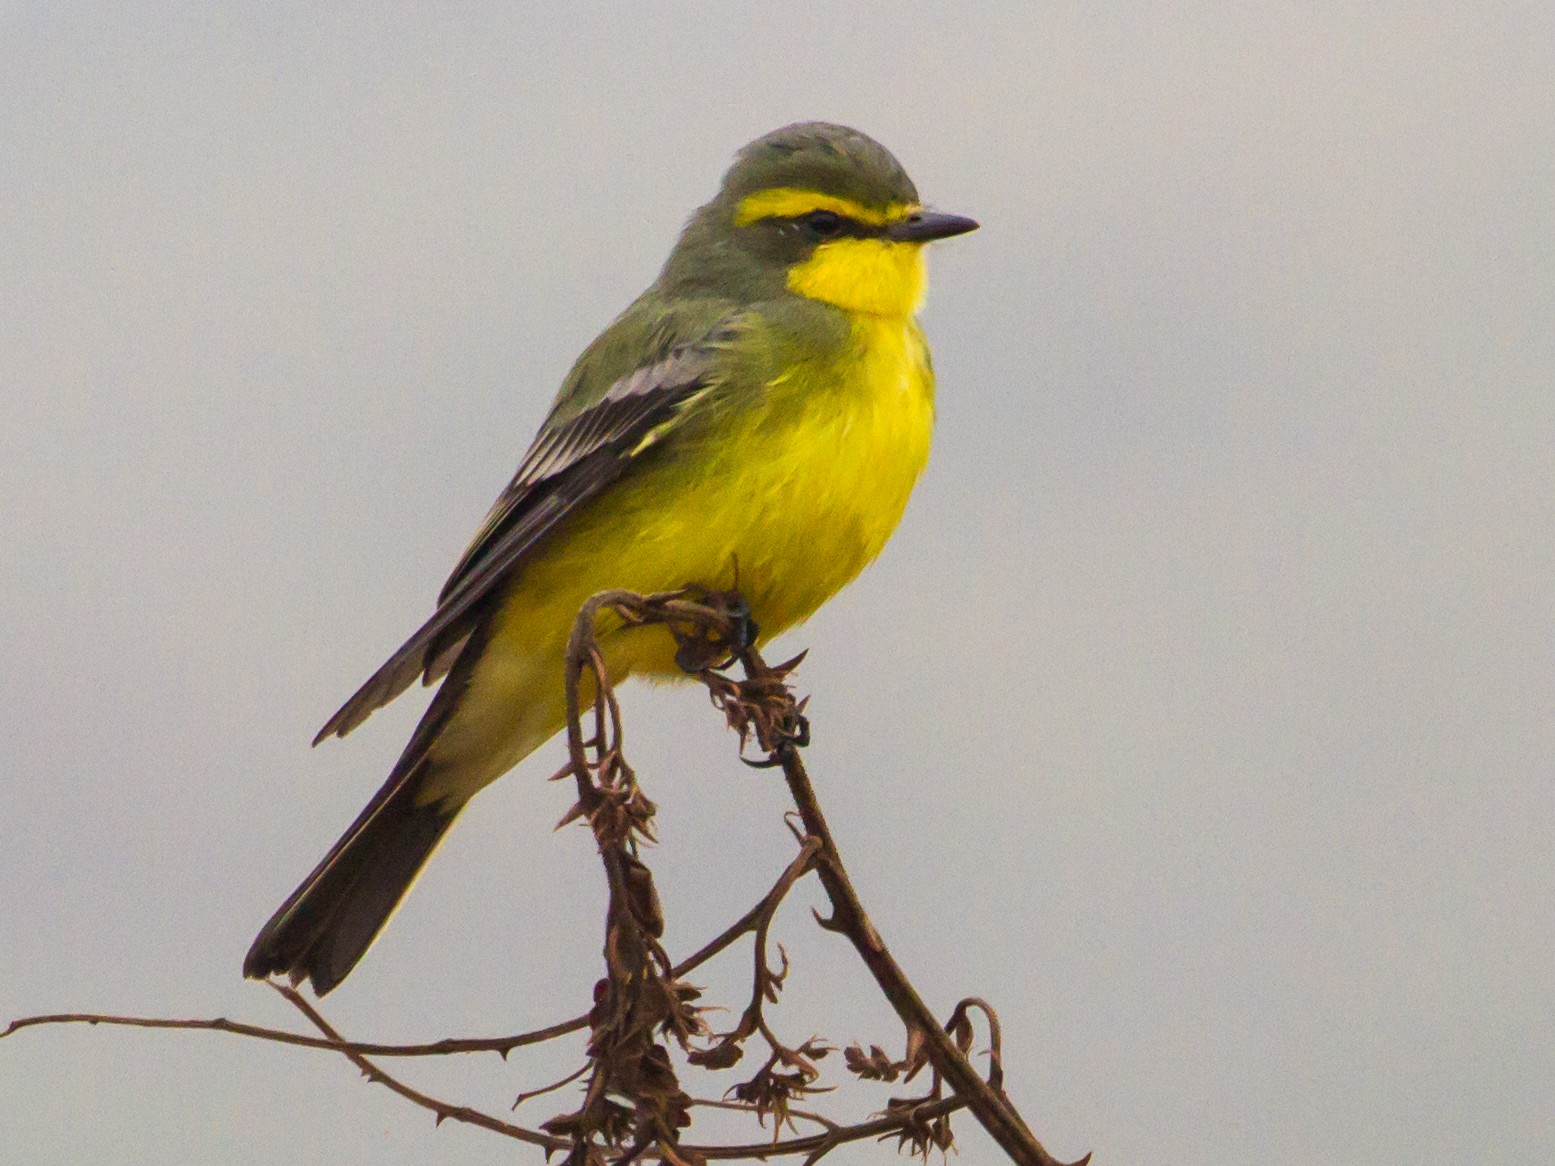 Yellow-browed Tyrant - Zé Edu Camargo